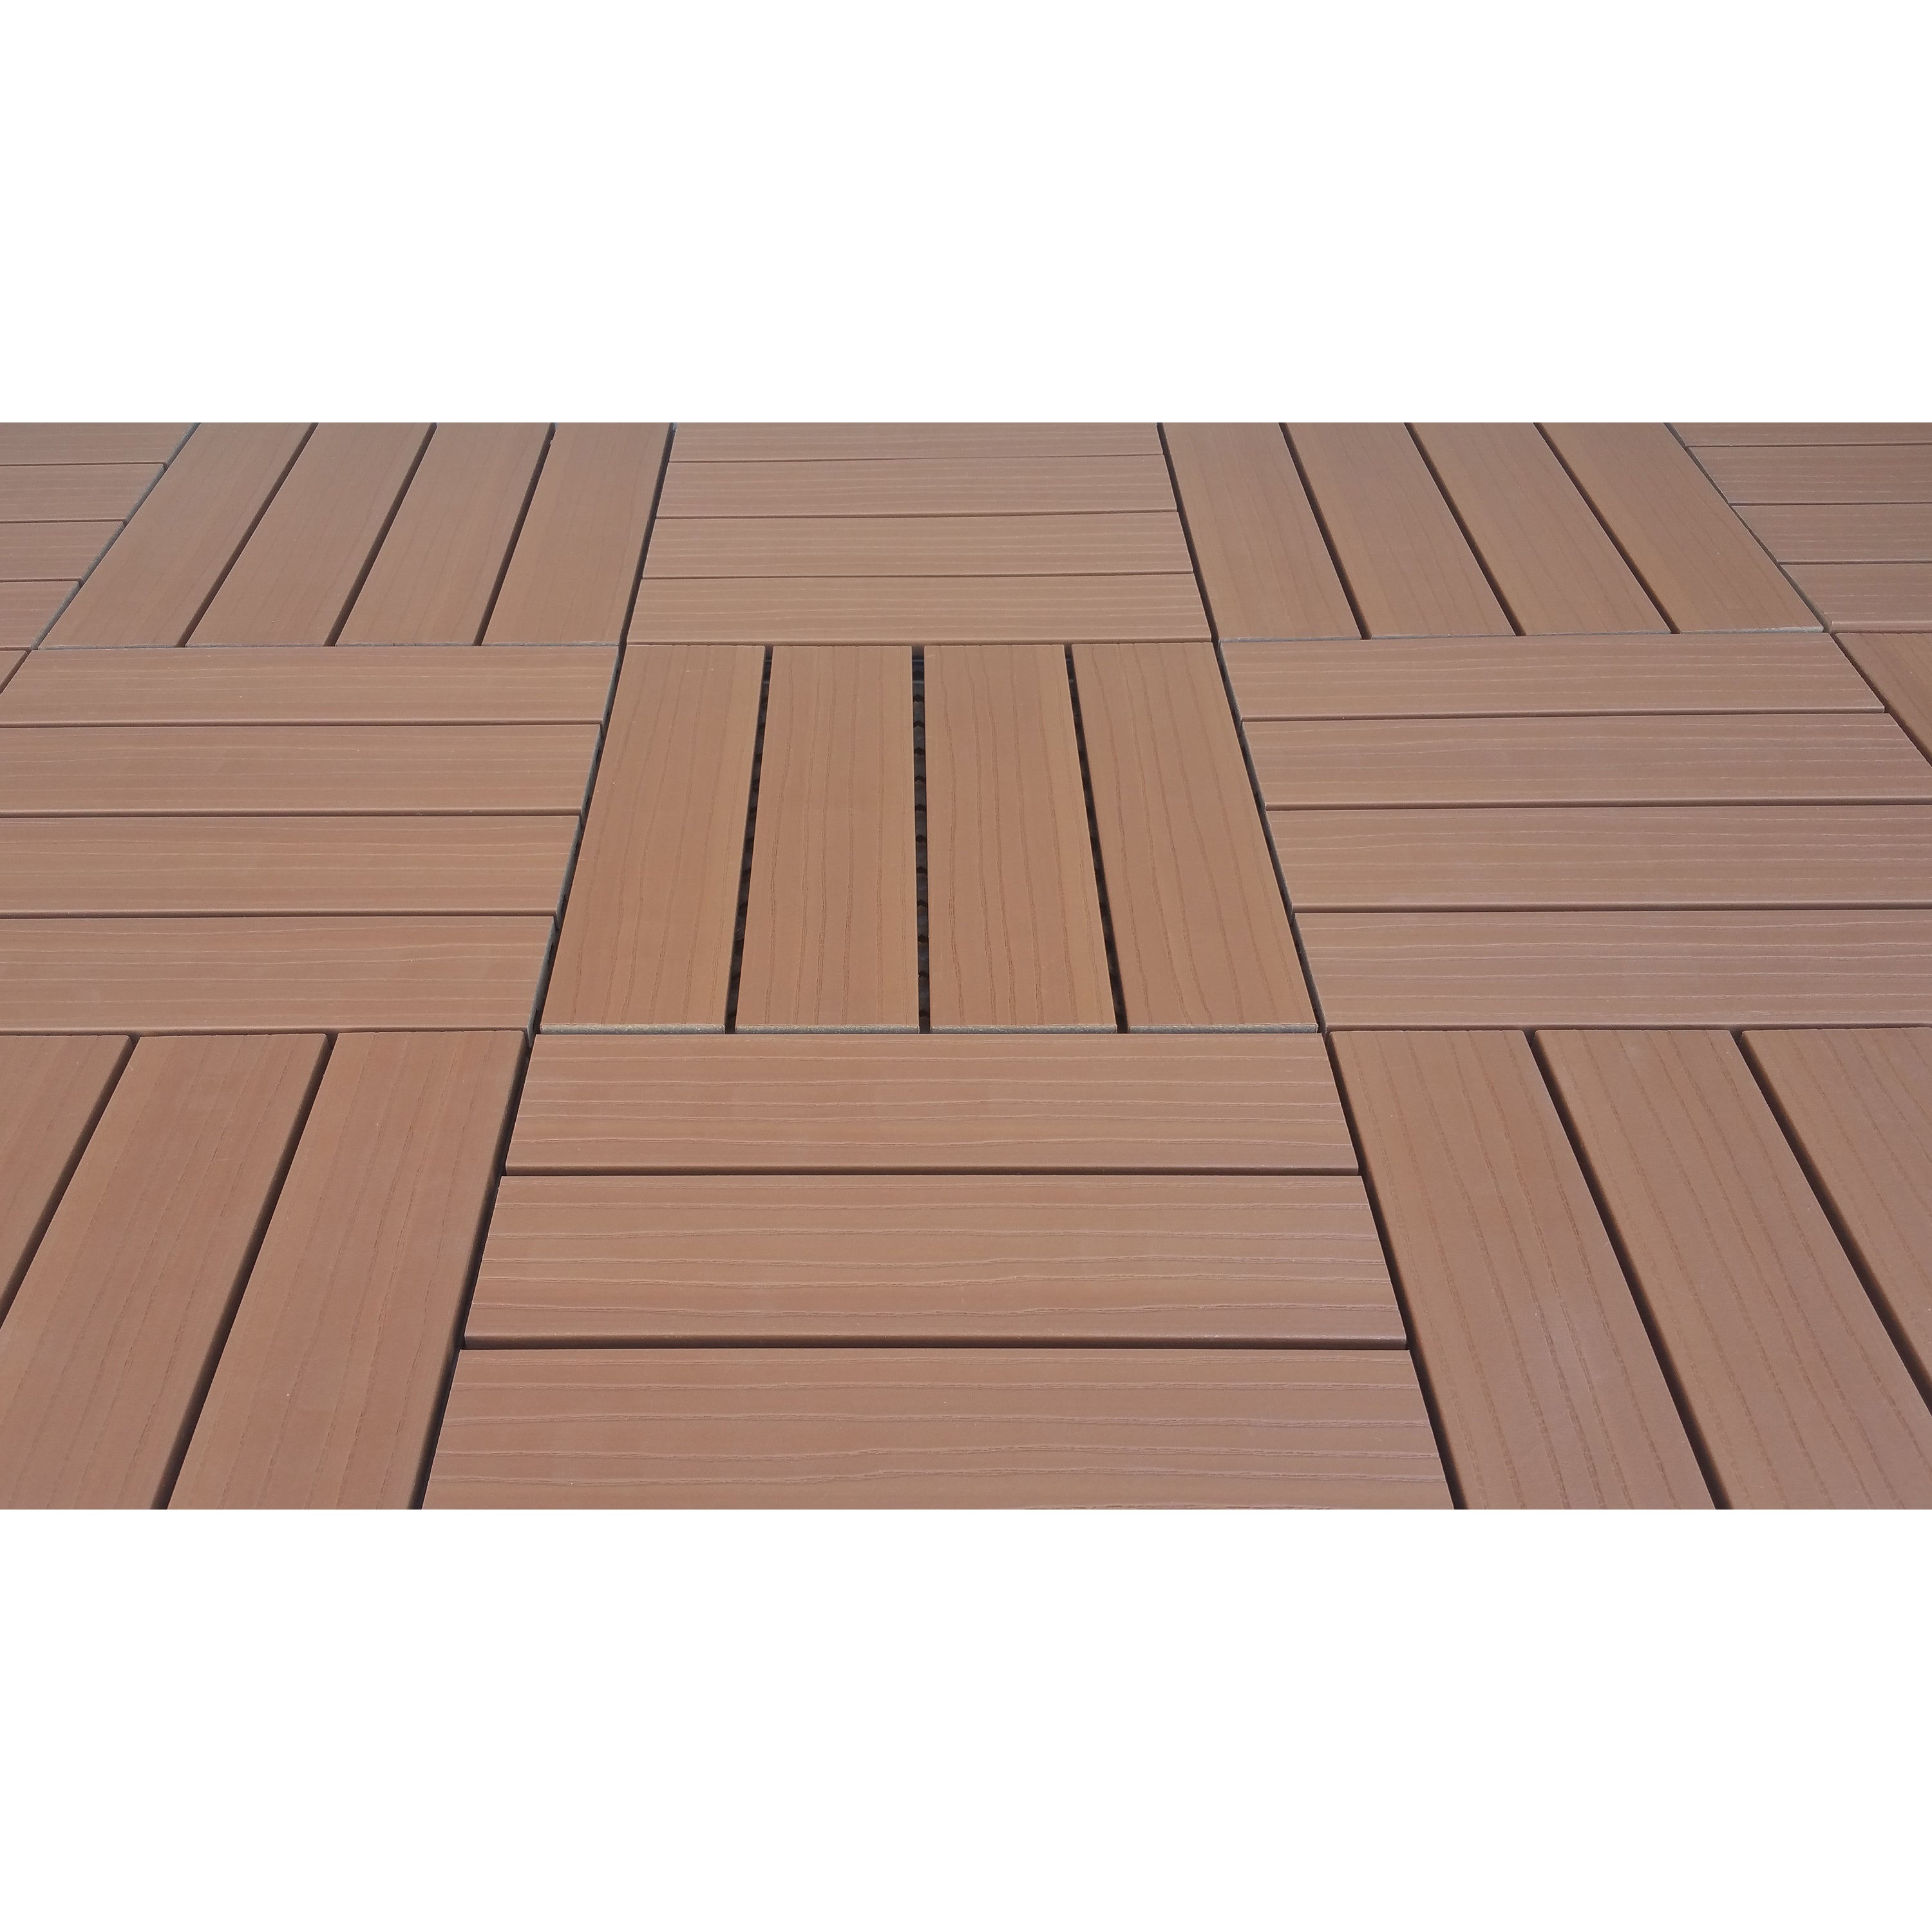 Vifah SuperWood Deck Tiles, Composite Cedar, Snap To Inst...